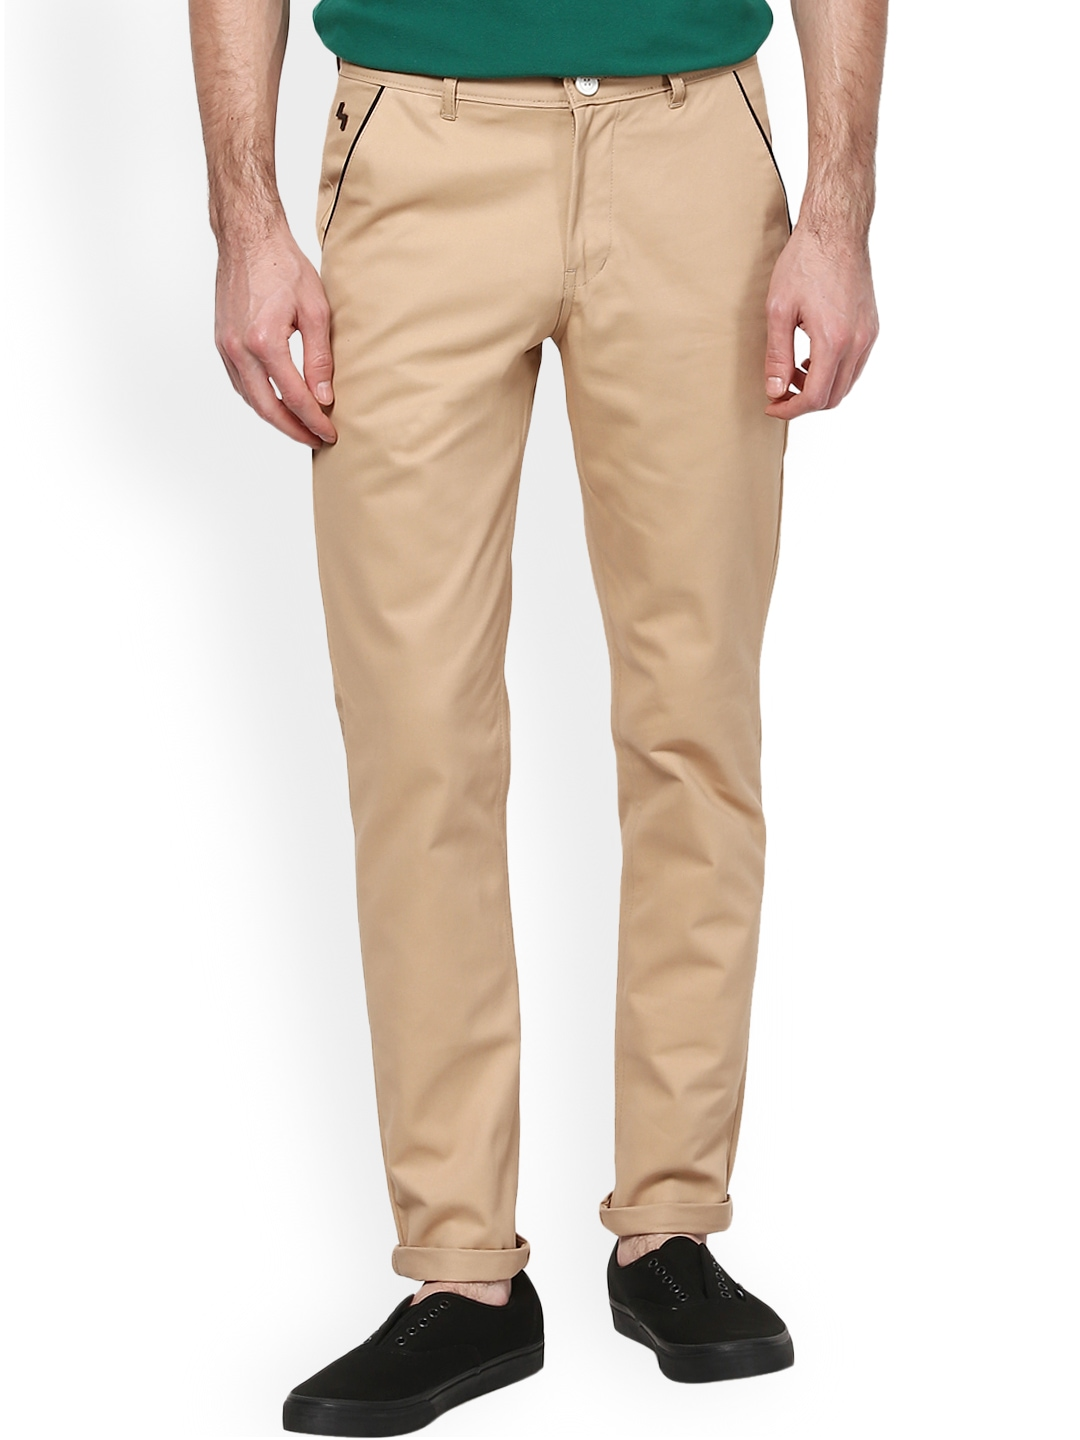 Cream Pants Mens 5 Reviews. Here eacvuazs.ga shows customers a fashion collection of current cream pants eacvuazs.ga can find many great items. They all .